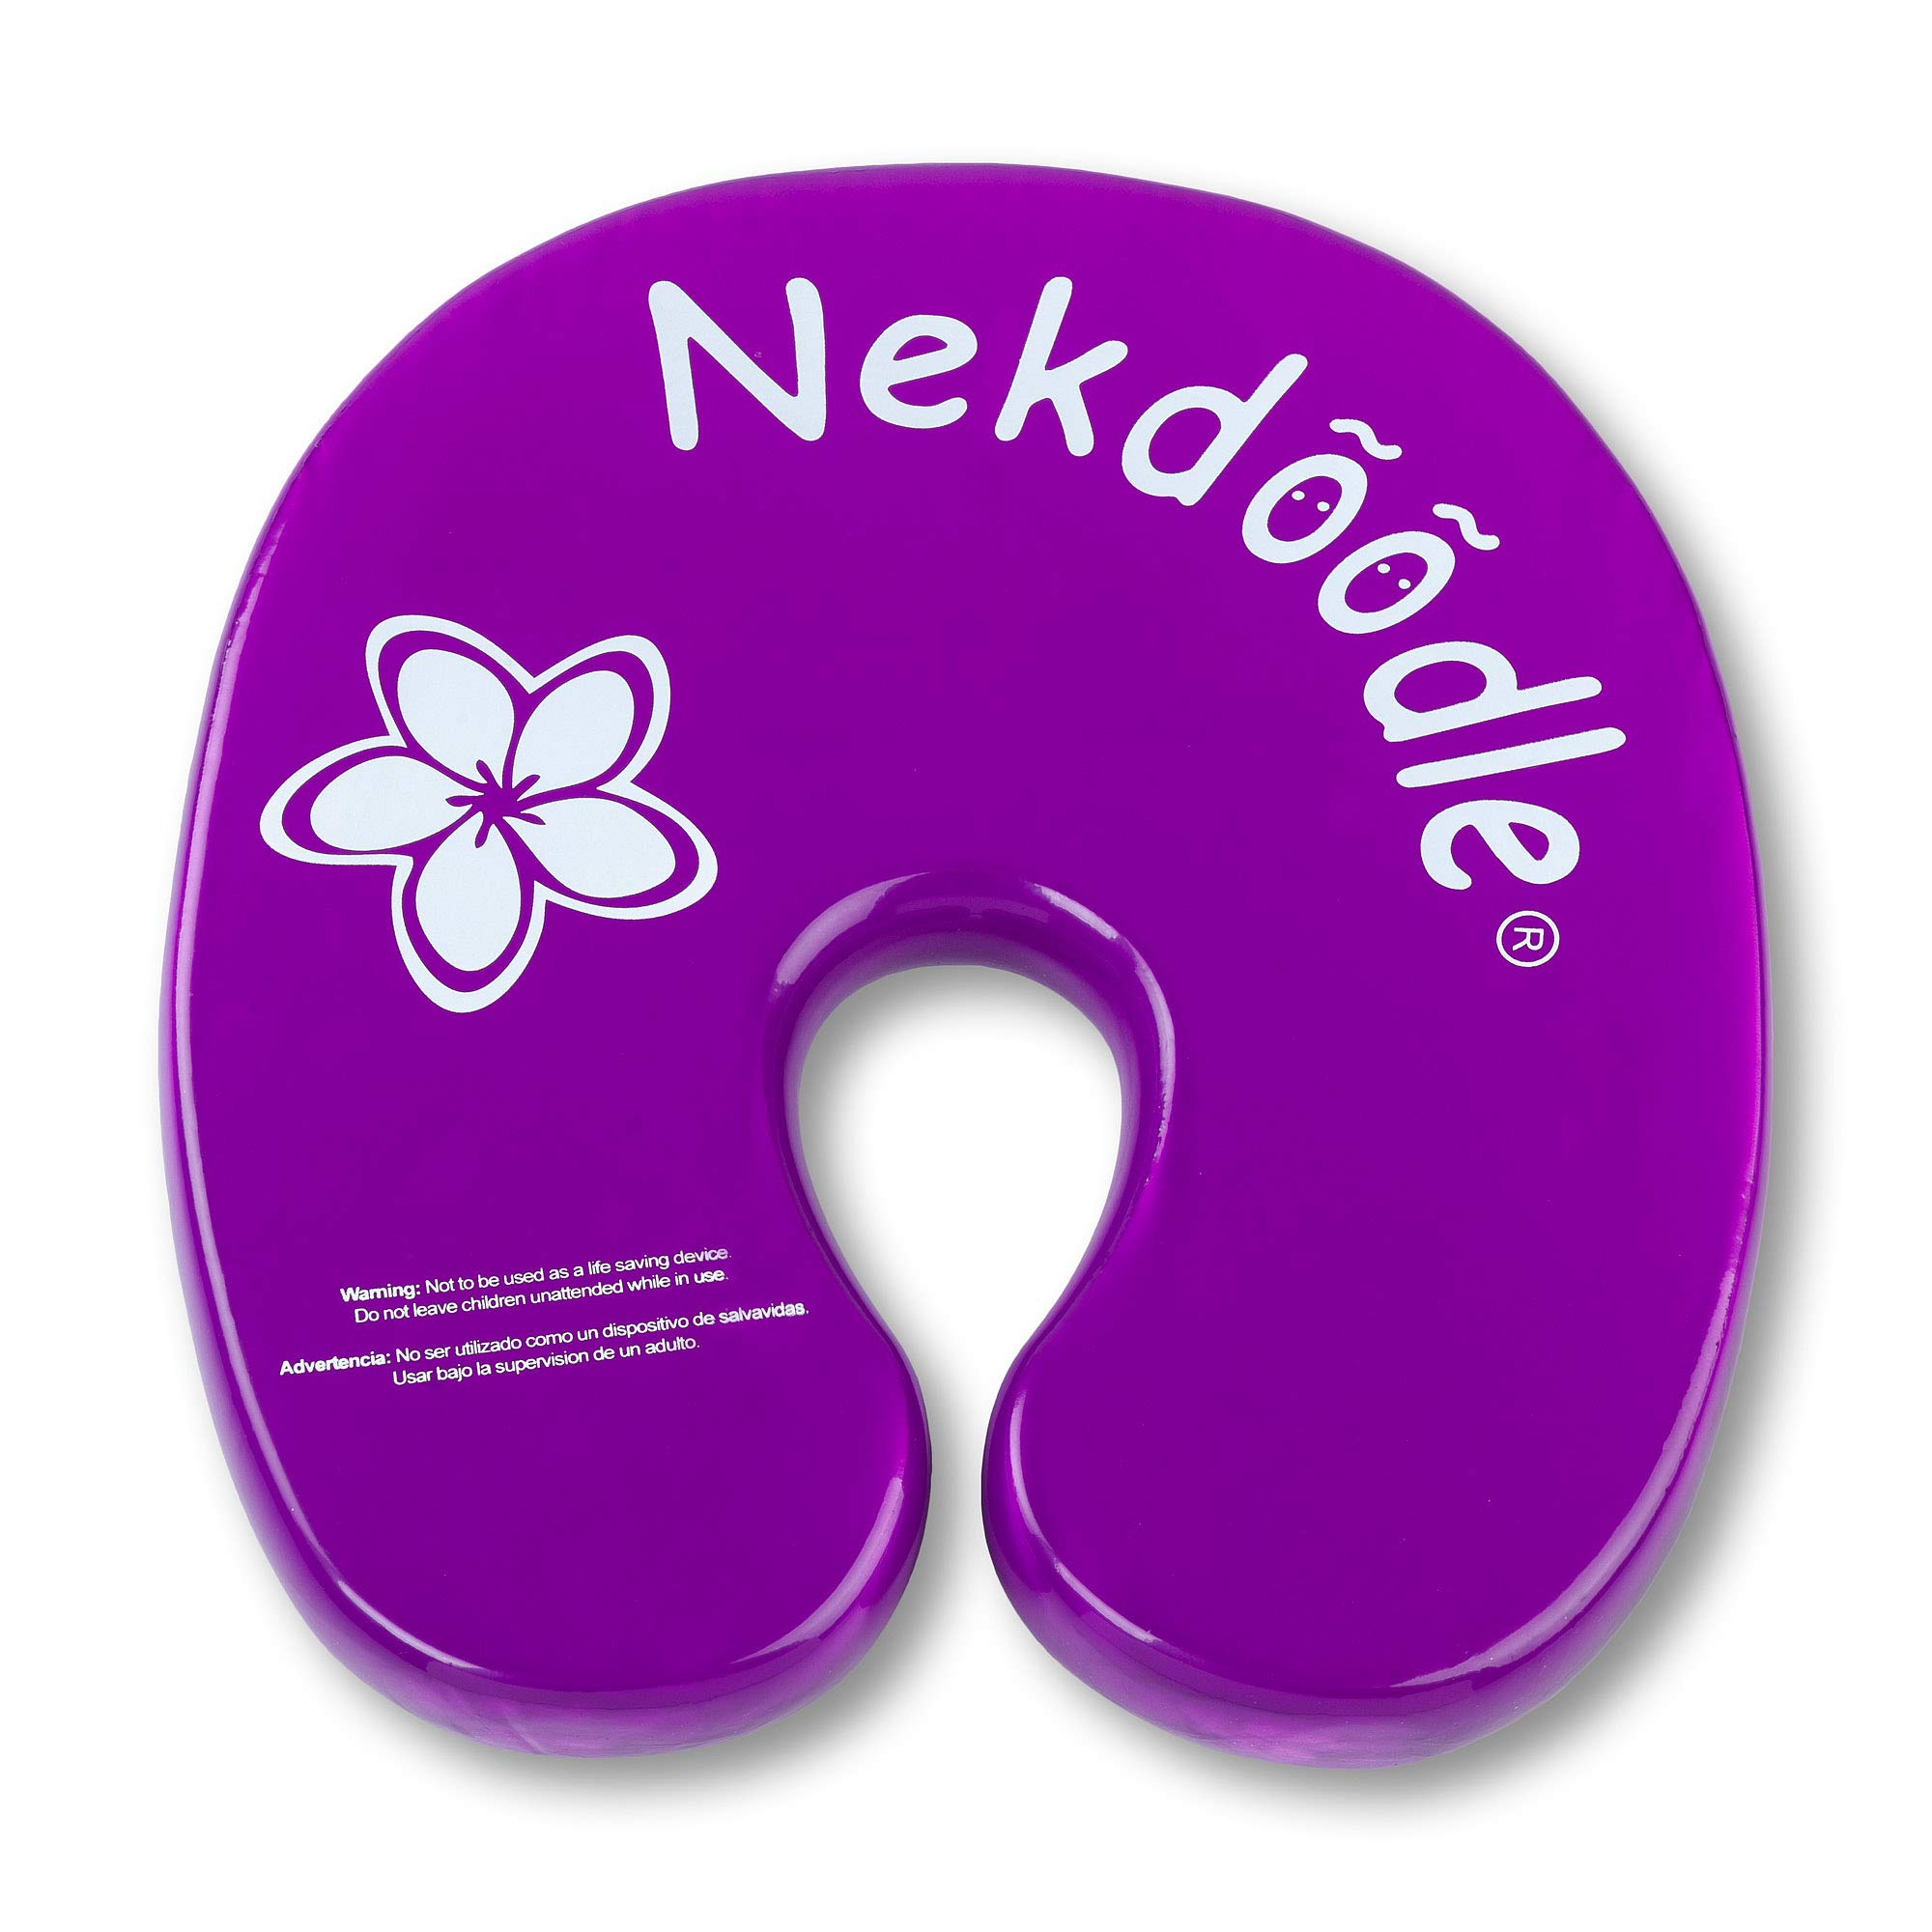 Nekdoodle Swimming Pool Float for Aqua Water Aerobics & Exercises - Pool Workouts & Fitness - Fun & Recreational Pool Toy - Fits Adults and Kids - Purple Plumeria Flower